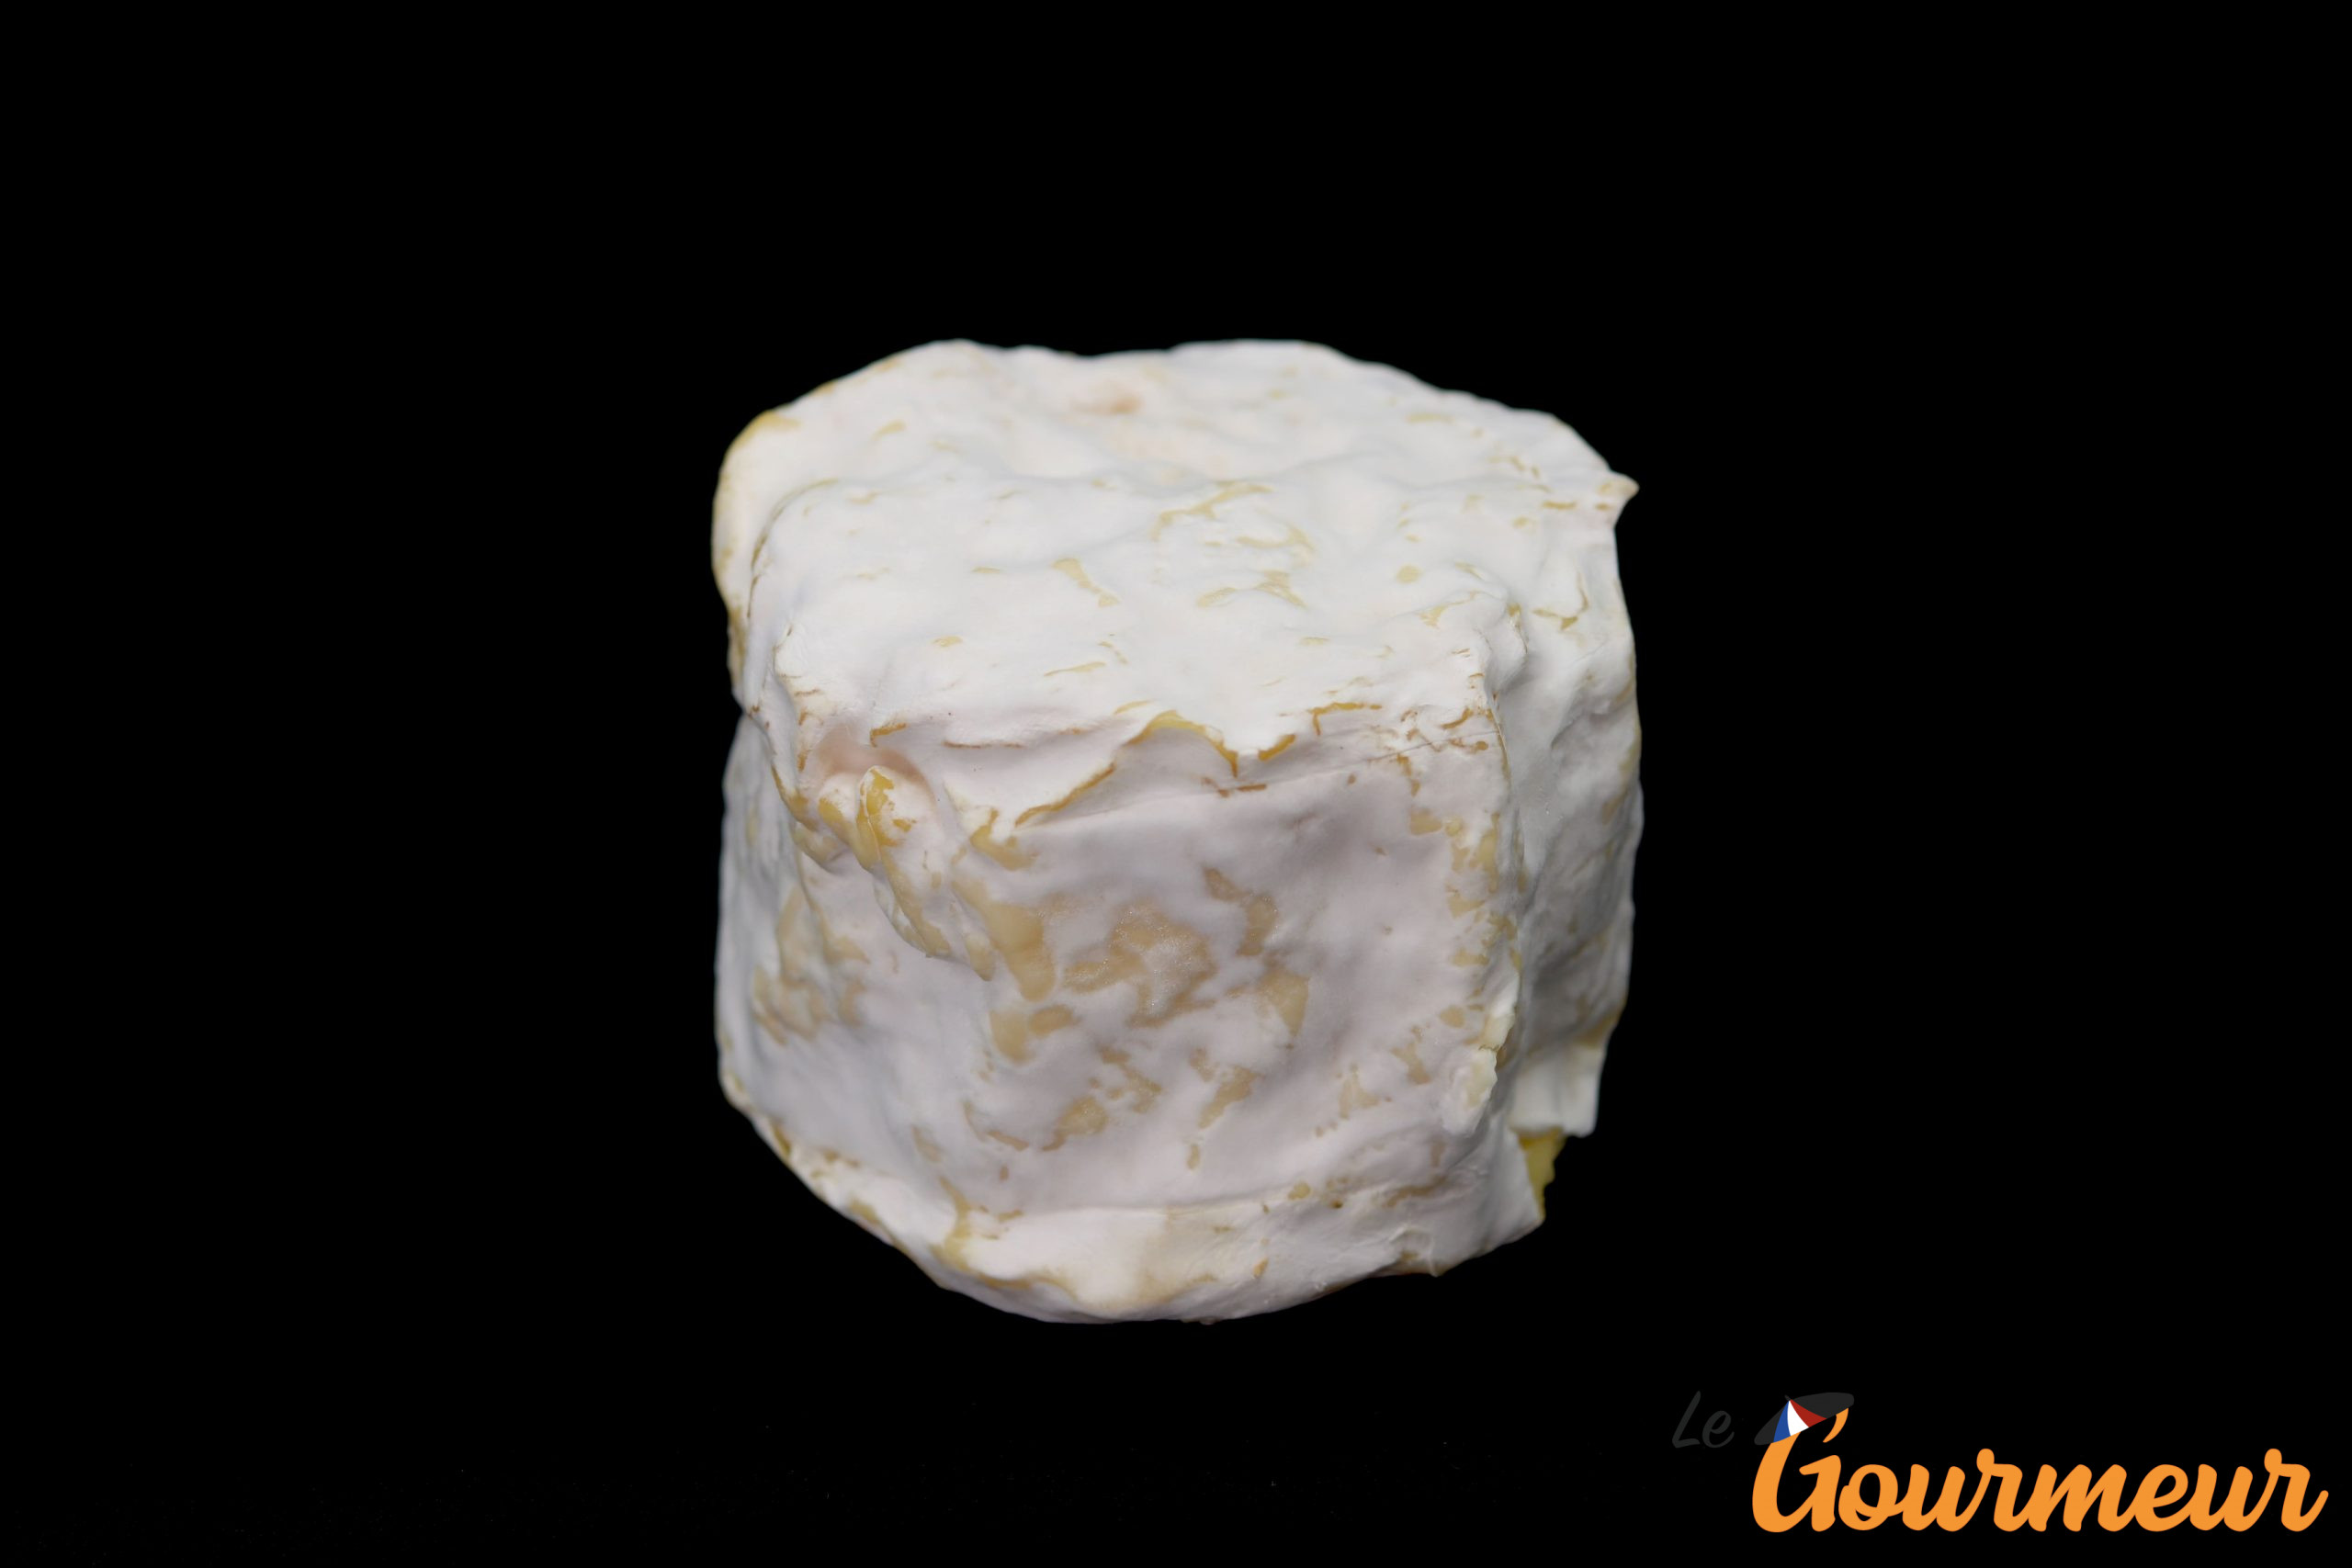 le graval fromage